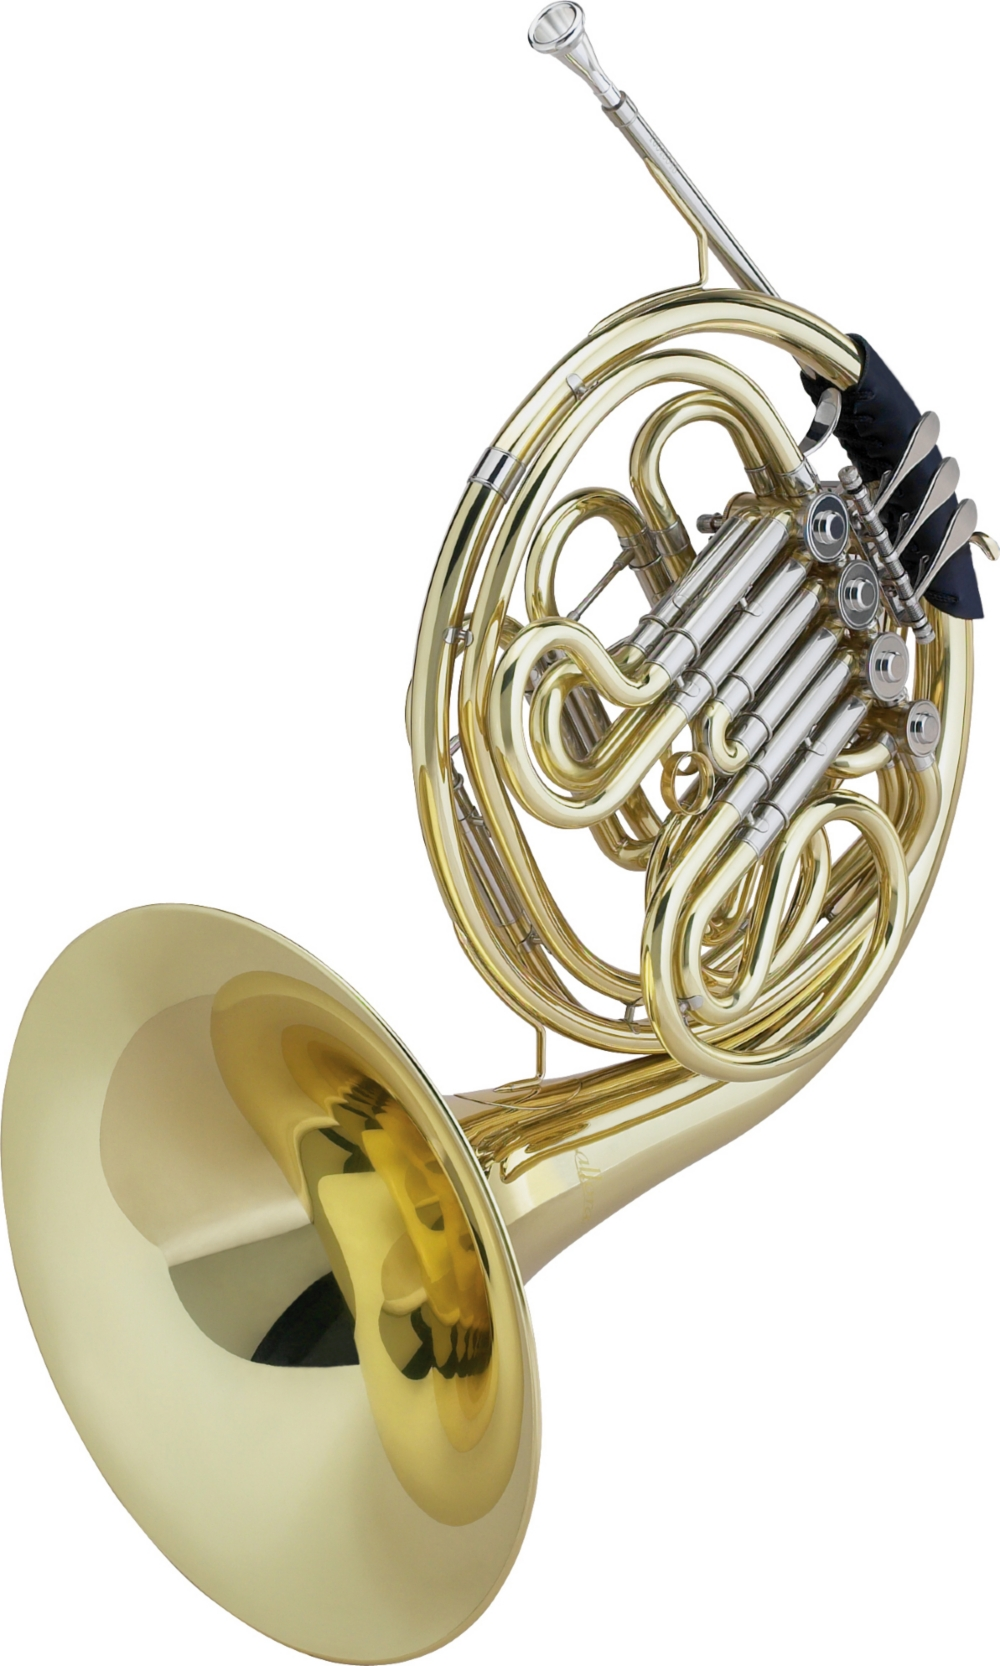 Allora AAHN-229 Geyer Series Double Horn AAHN229 Lacquer by Allora